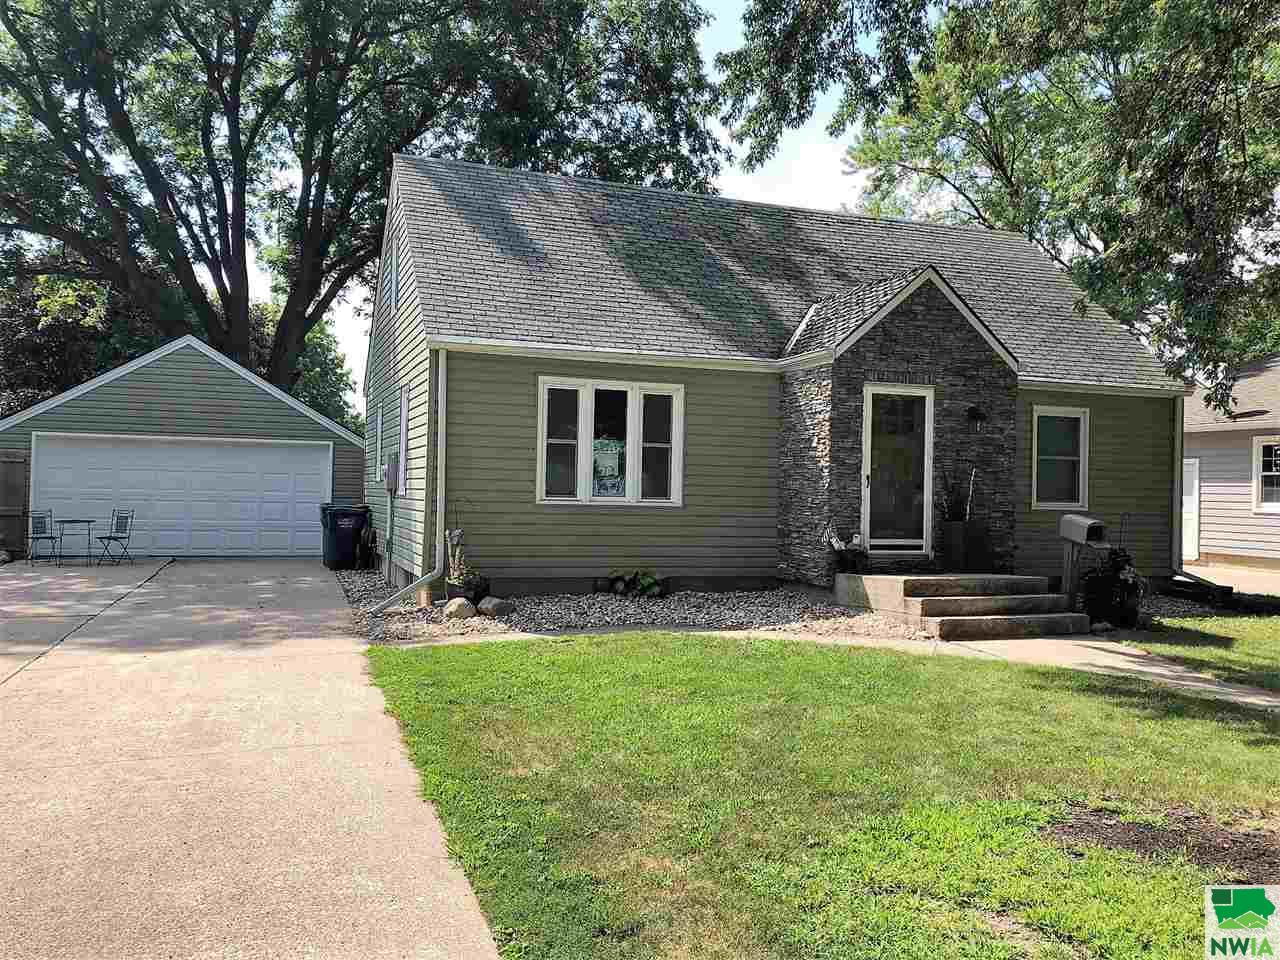 Property for sale at 114 Florida Ave Sw, Orange City,  IA 51041